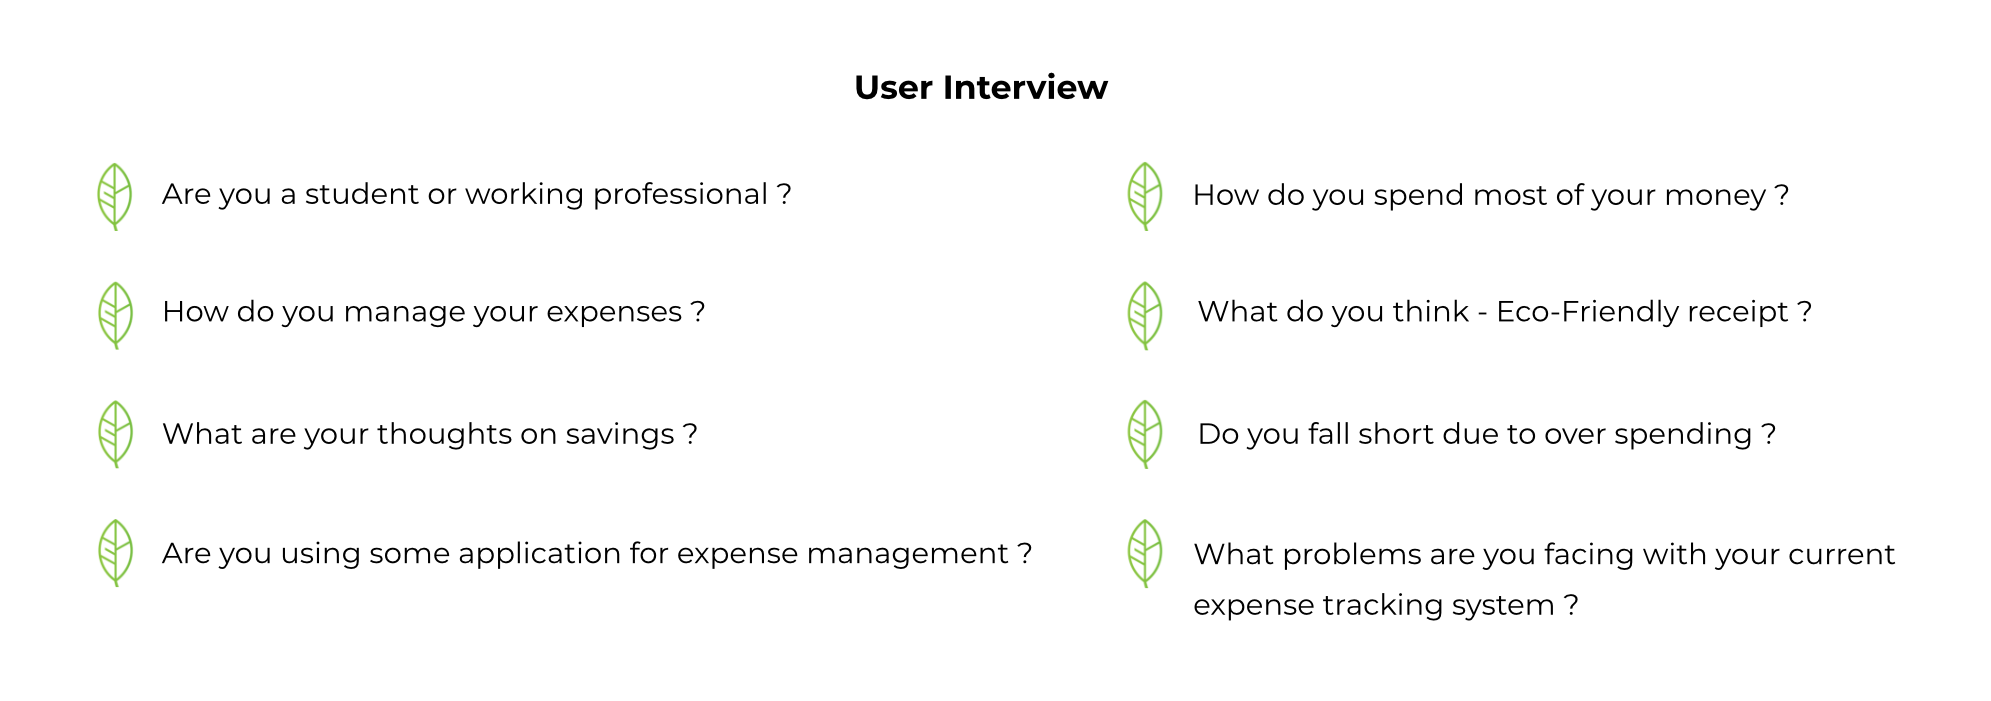 Interview Questions Image